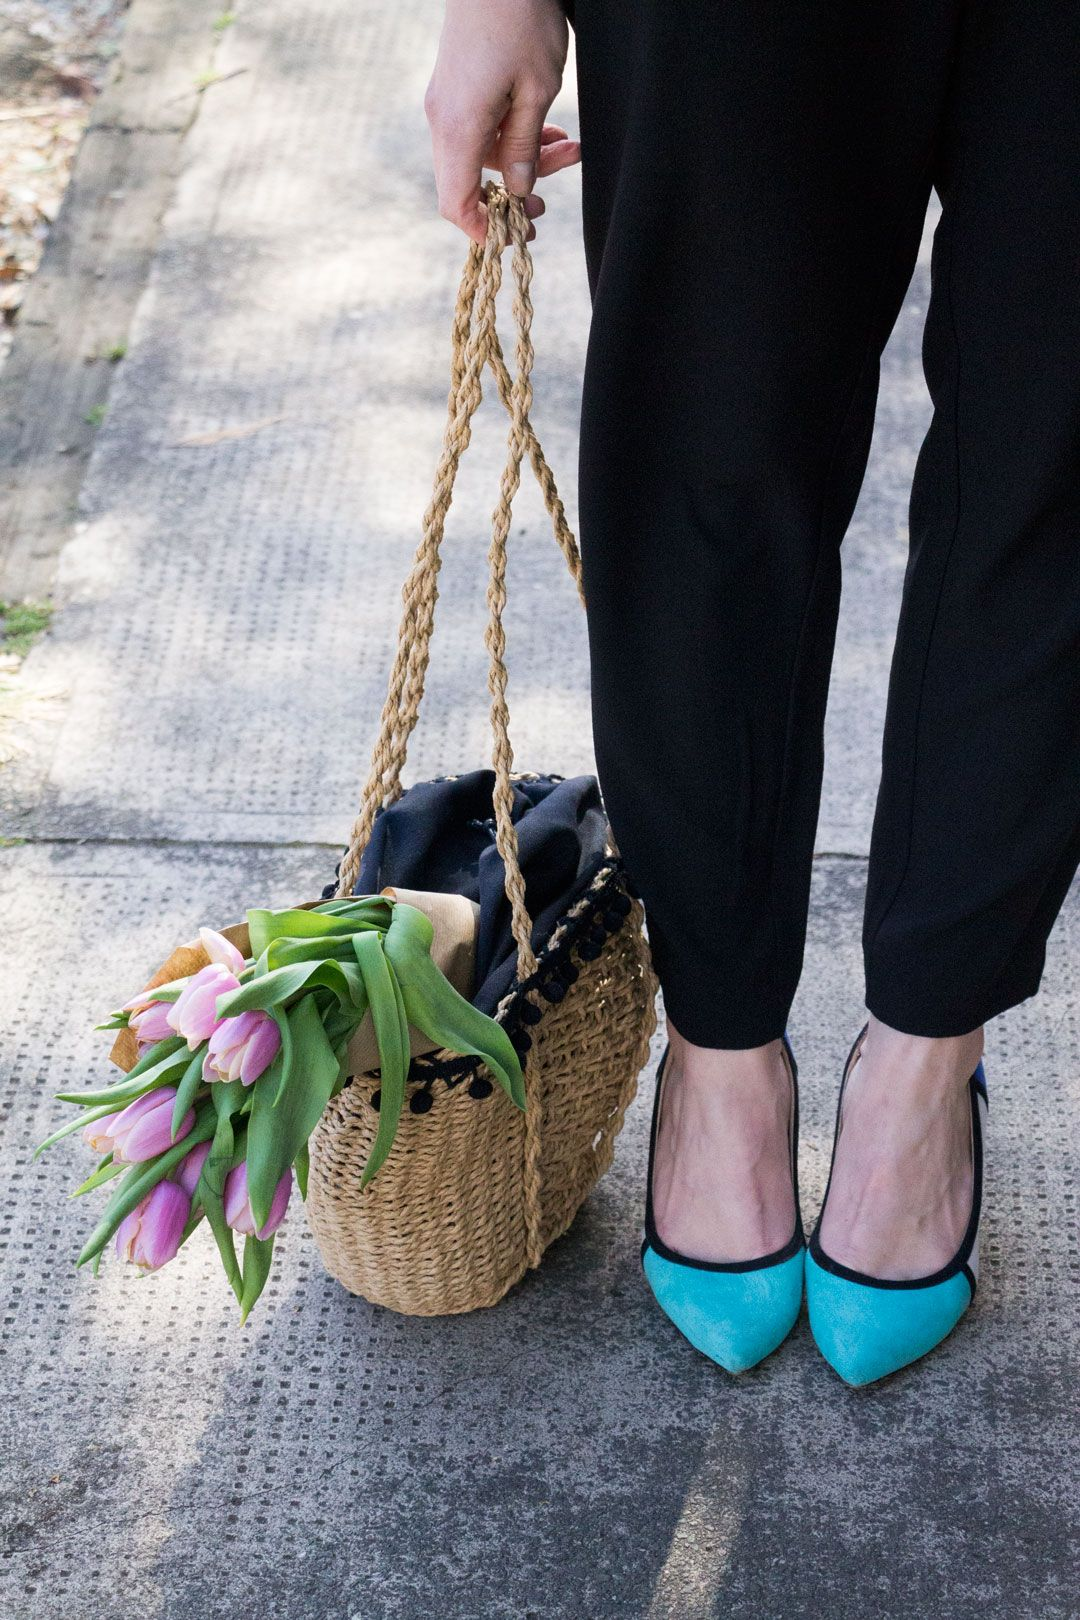 She talks Glam | Detail: blue heels and wicker bag | Polka dots shirt, pleated pants and light denim jacket | Blue heels and wicker ZARA bag | Cambridge Fashion